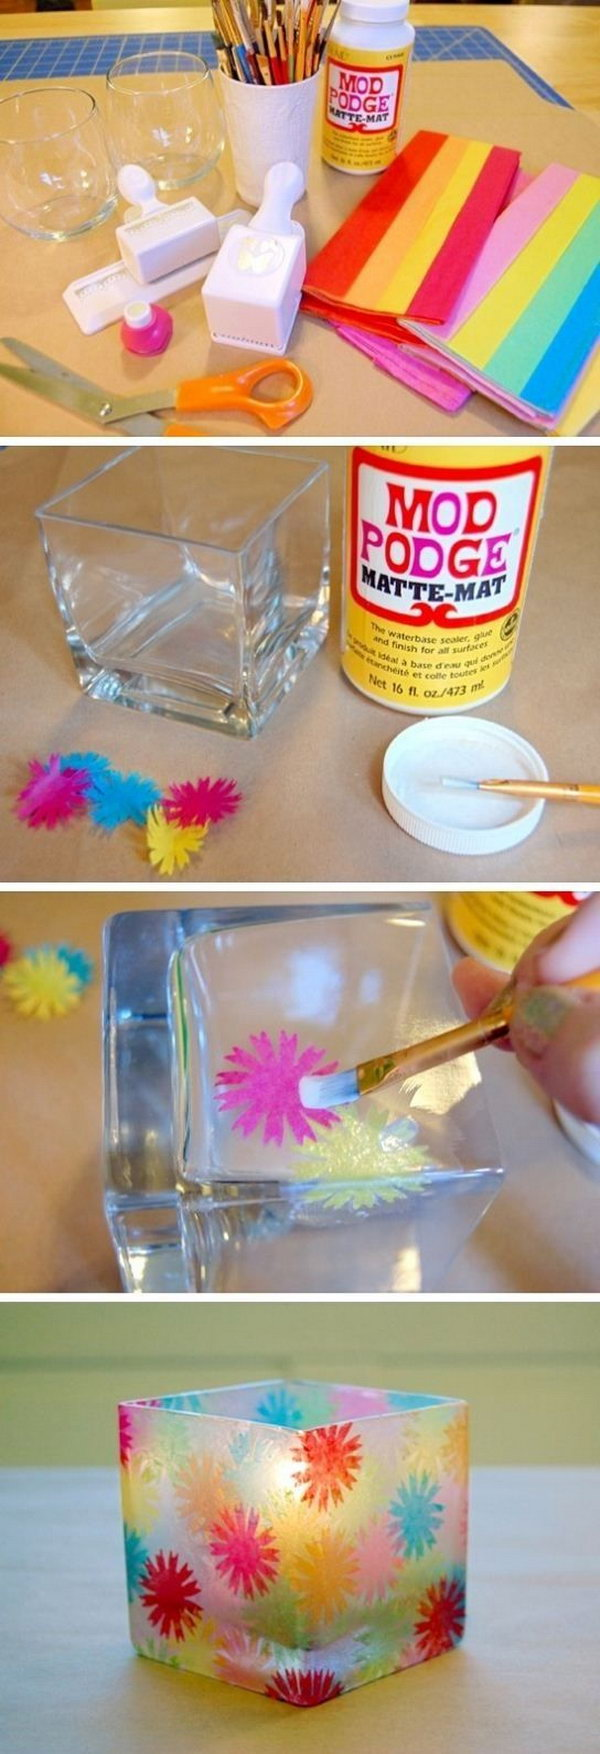 """Stained Glass"""" Votive Holders.  Use these colorful tissue paper to decorate a glass container and make a votive holder to whip up custom party décor on the cheap. This project is quick and easy to make. If you want to get one, check out the tutorial"""